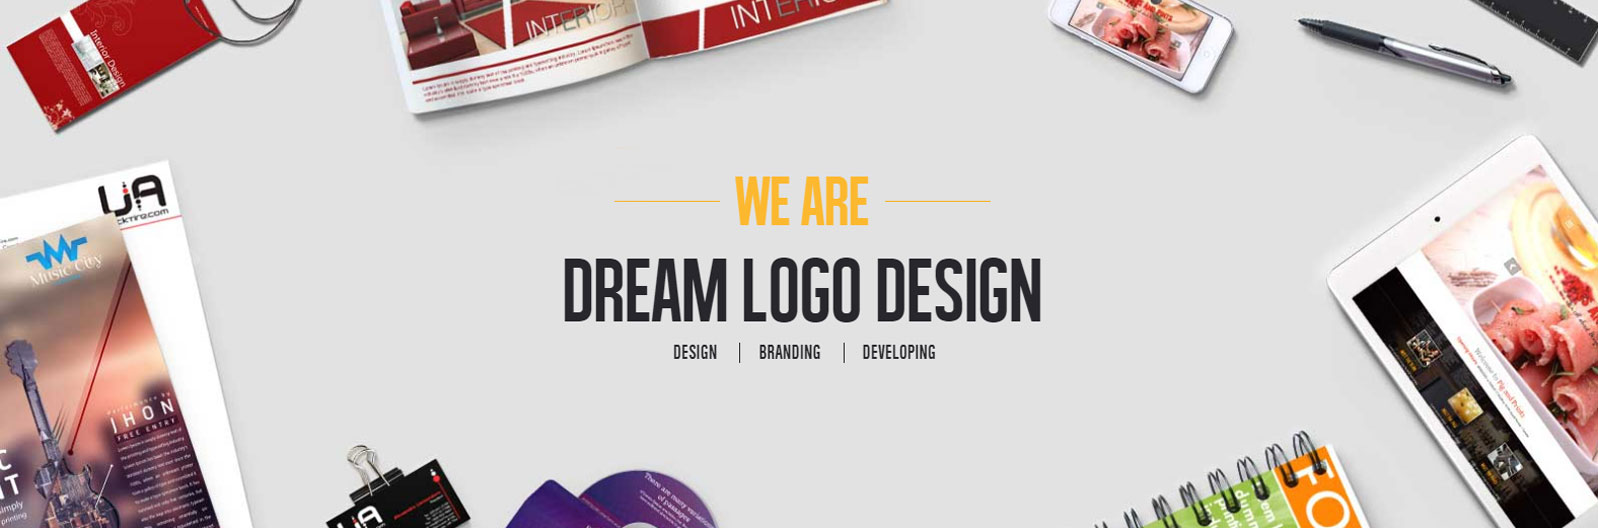 Cleaning Logo Design Portfolio 23